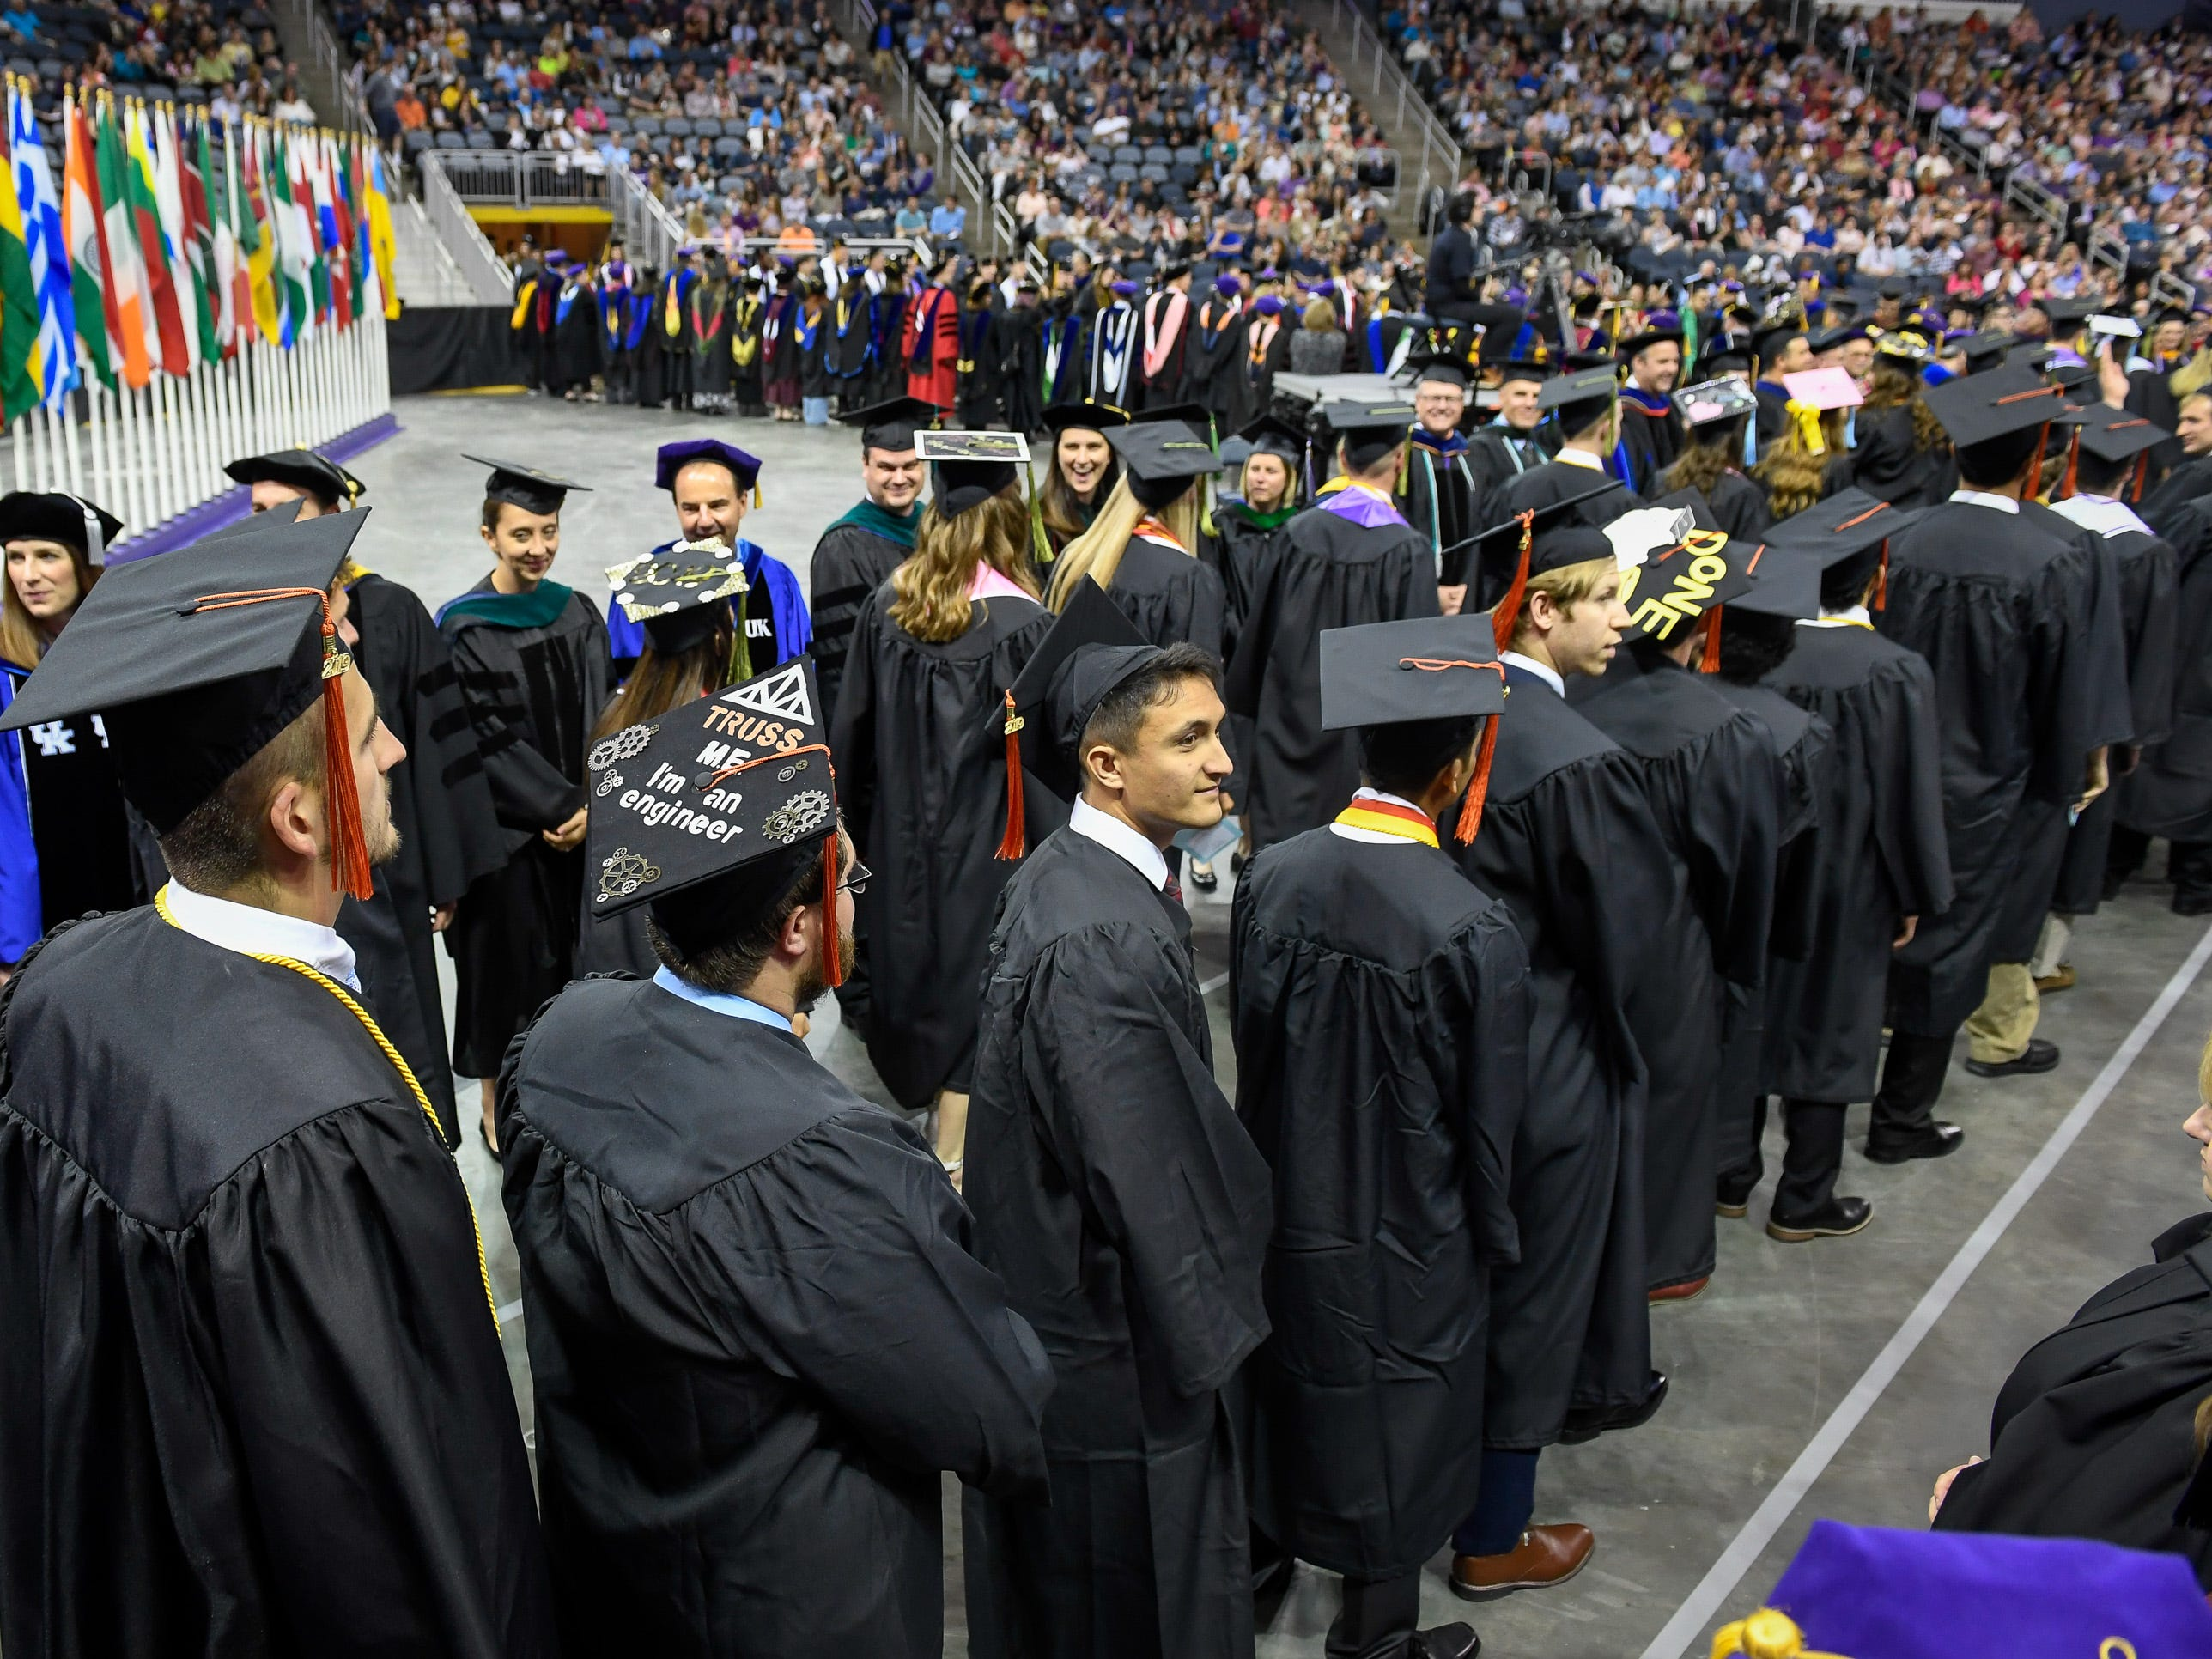 Graduates file on to the arena floor for the University of Evansville's 161st commencement ceremony held at the Ford Center Saturday, May 11, 2019.